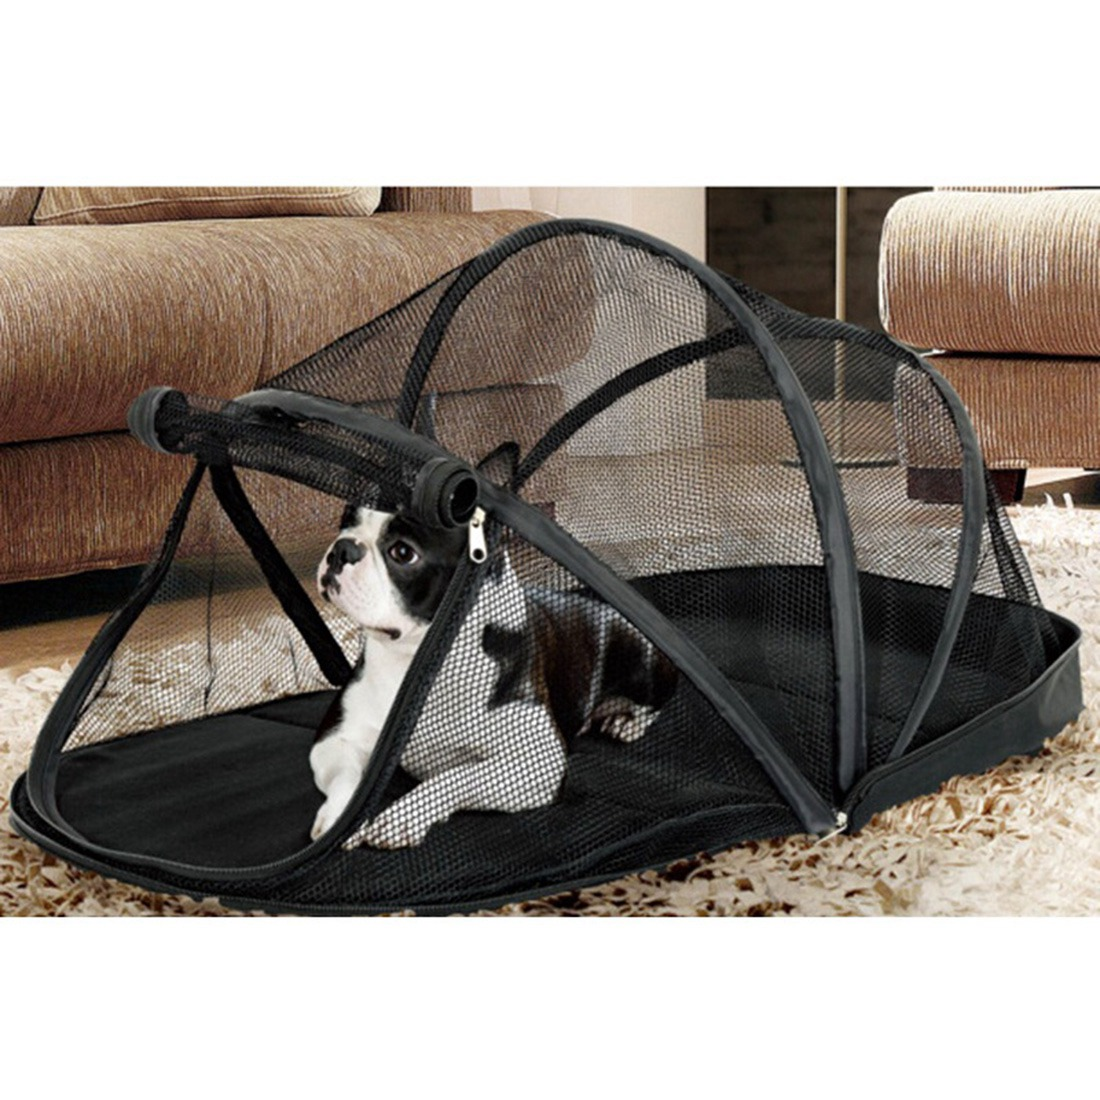 Aliexpress Com Buy Portable Dog Cat Pet Puppy Drinker: Aliexpress.com : Buy Portable Dog House Cage For Small